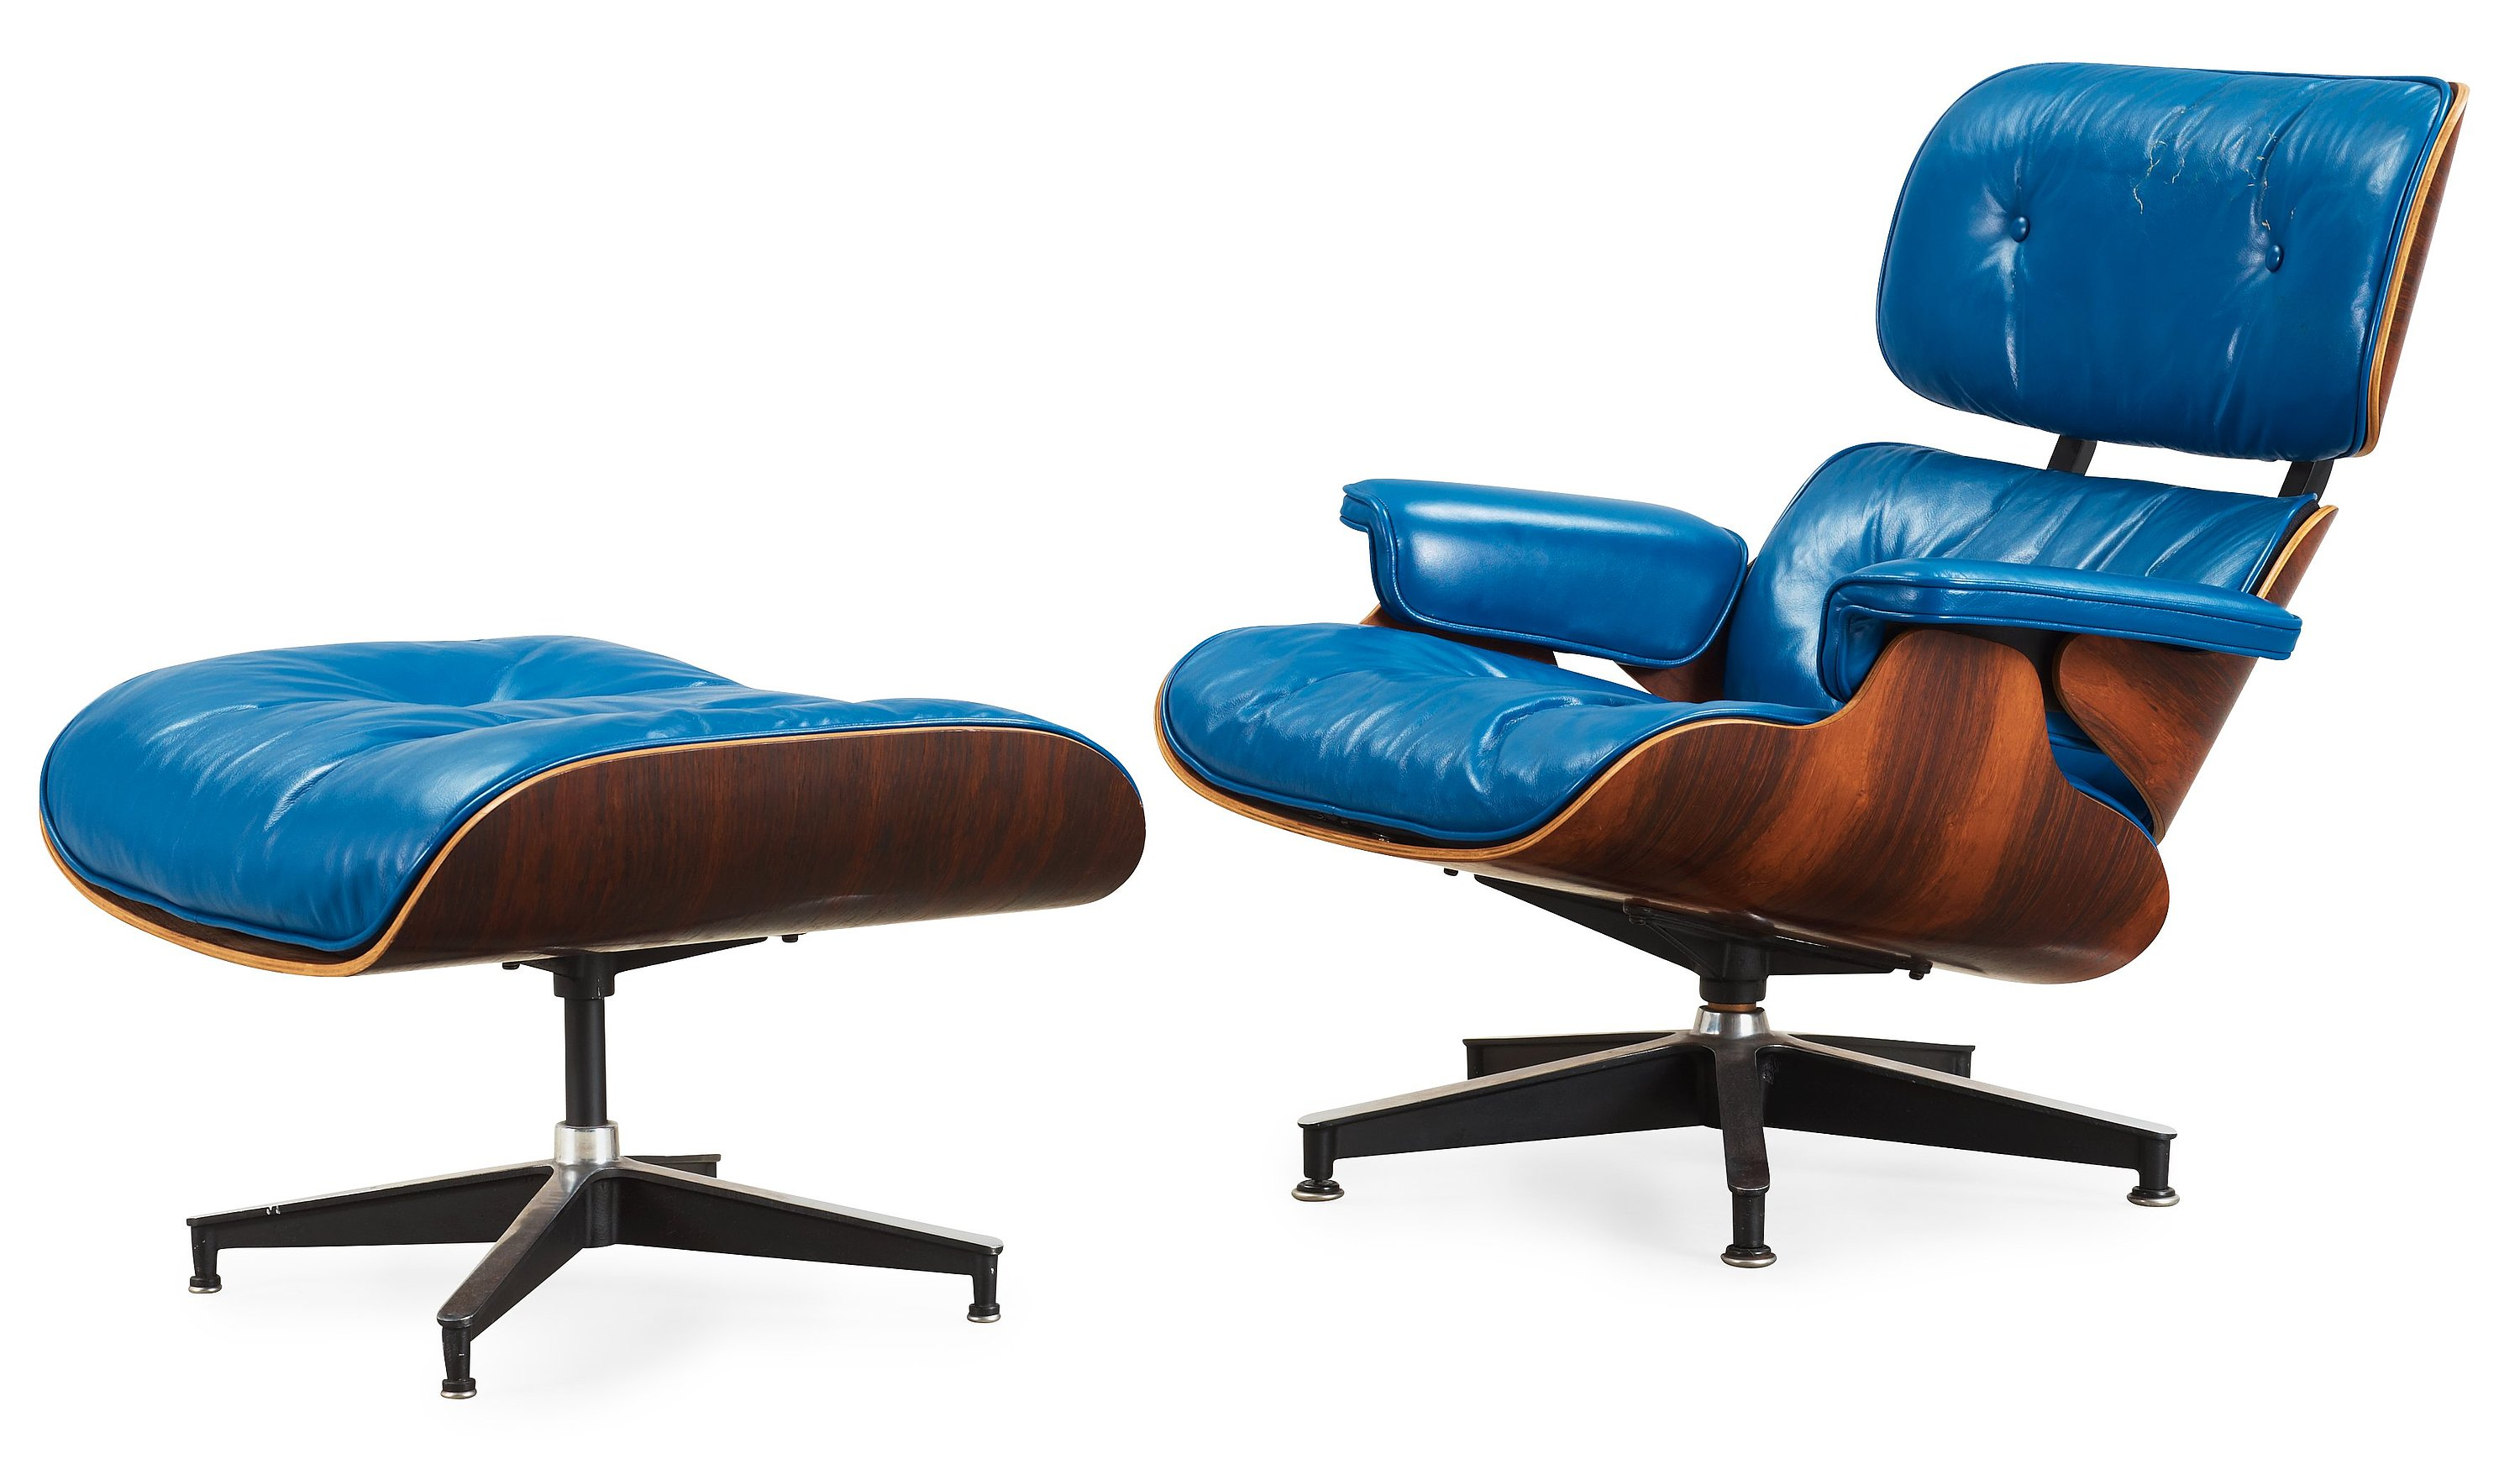 Enjoyable A Charles And Ray Eames Lounge Chair And Ottoman Herman Caraccident5 Cool Chair Designs And Ideas Caraccident5Info